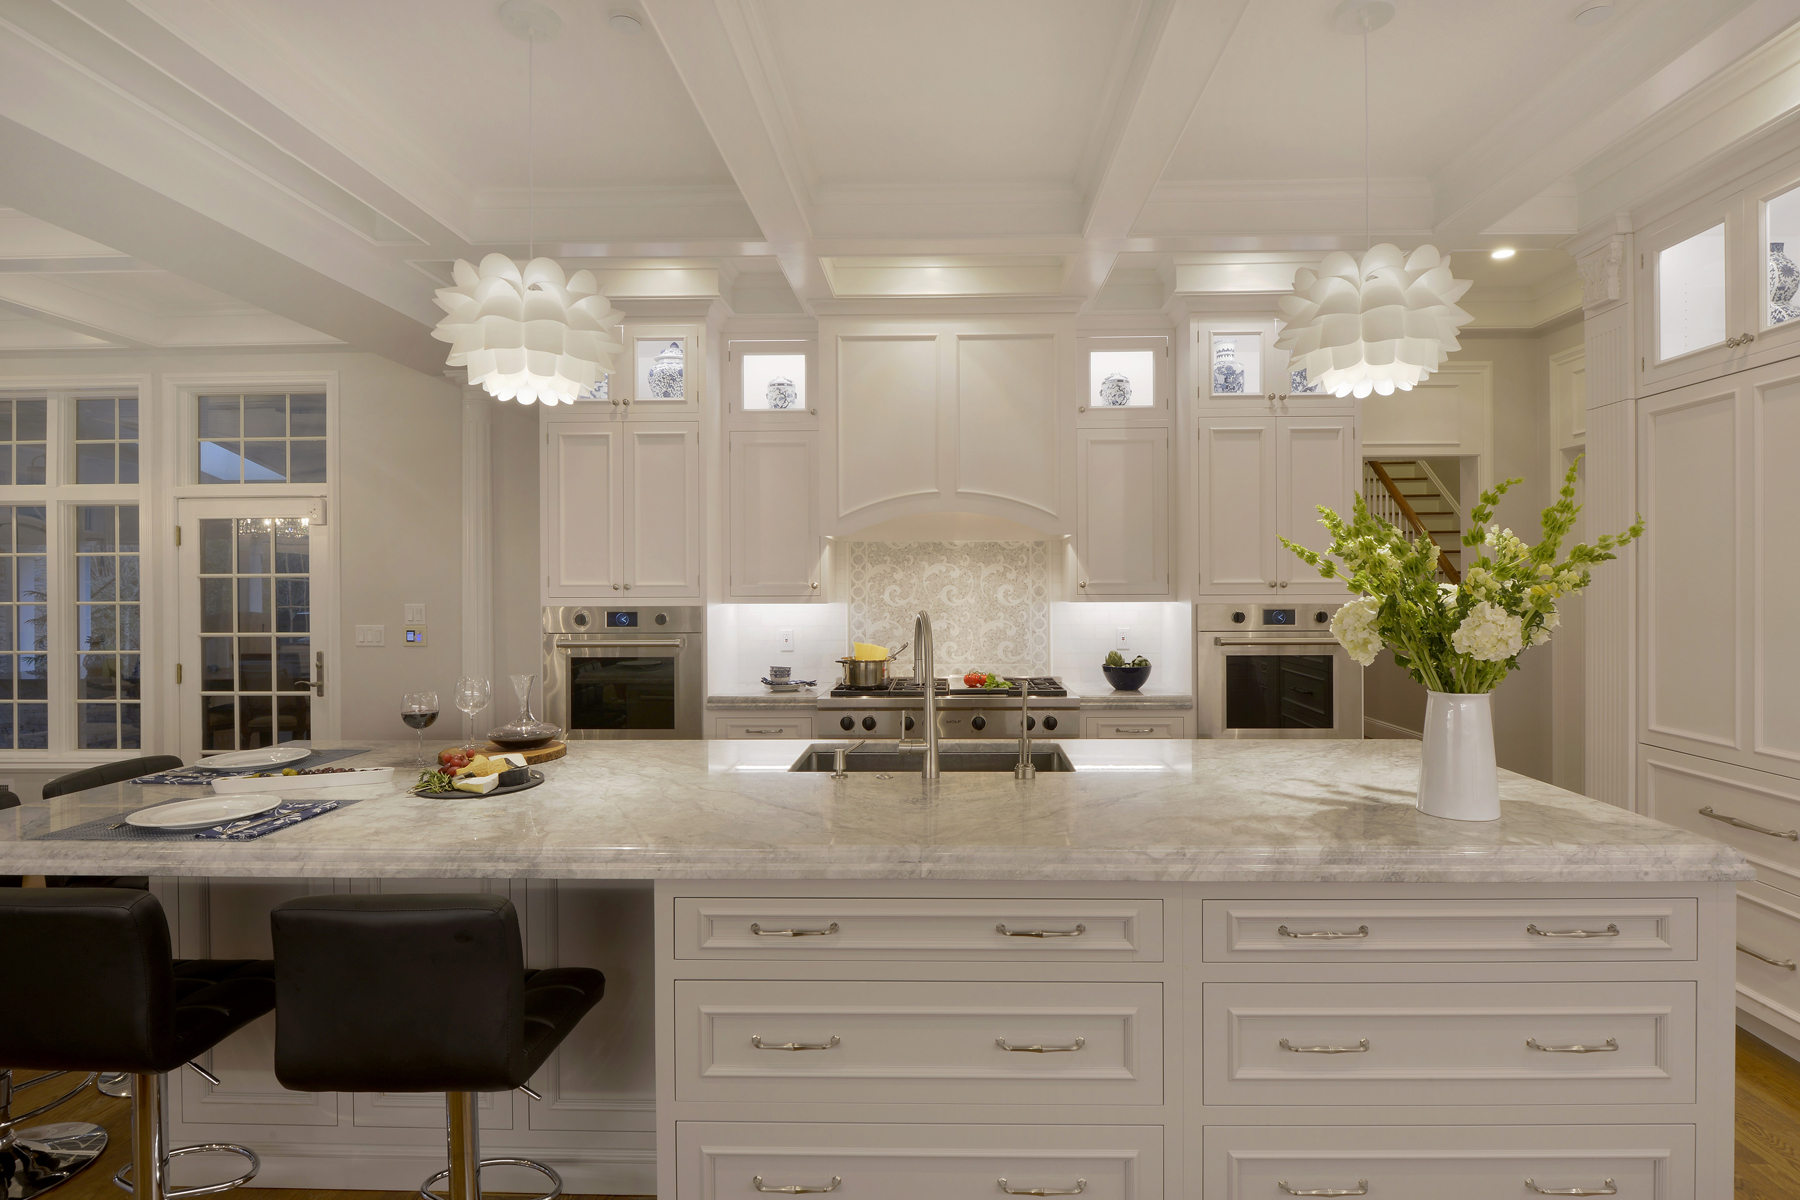 Large island with seating features marble top and fully custom white painted Bilotta cabinets. Double-tiered white painted Bilotta cabinets throughout kitchen. Designed by Fabrice Garson of Bilotta Kitchens.